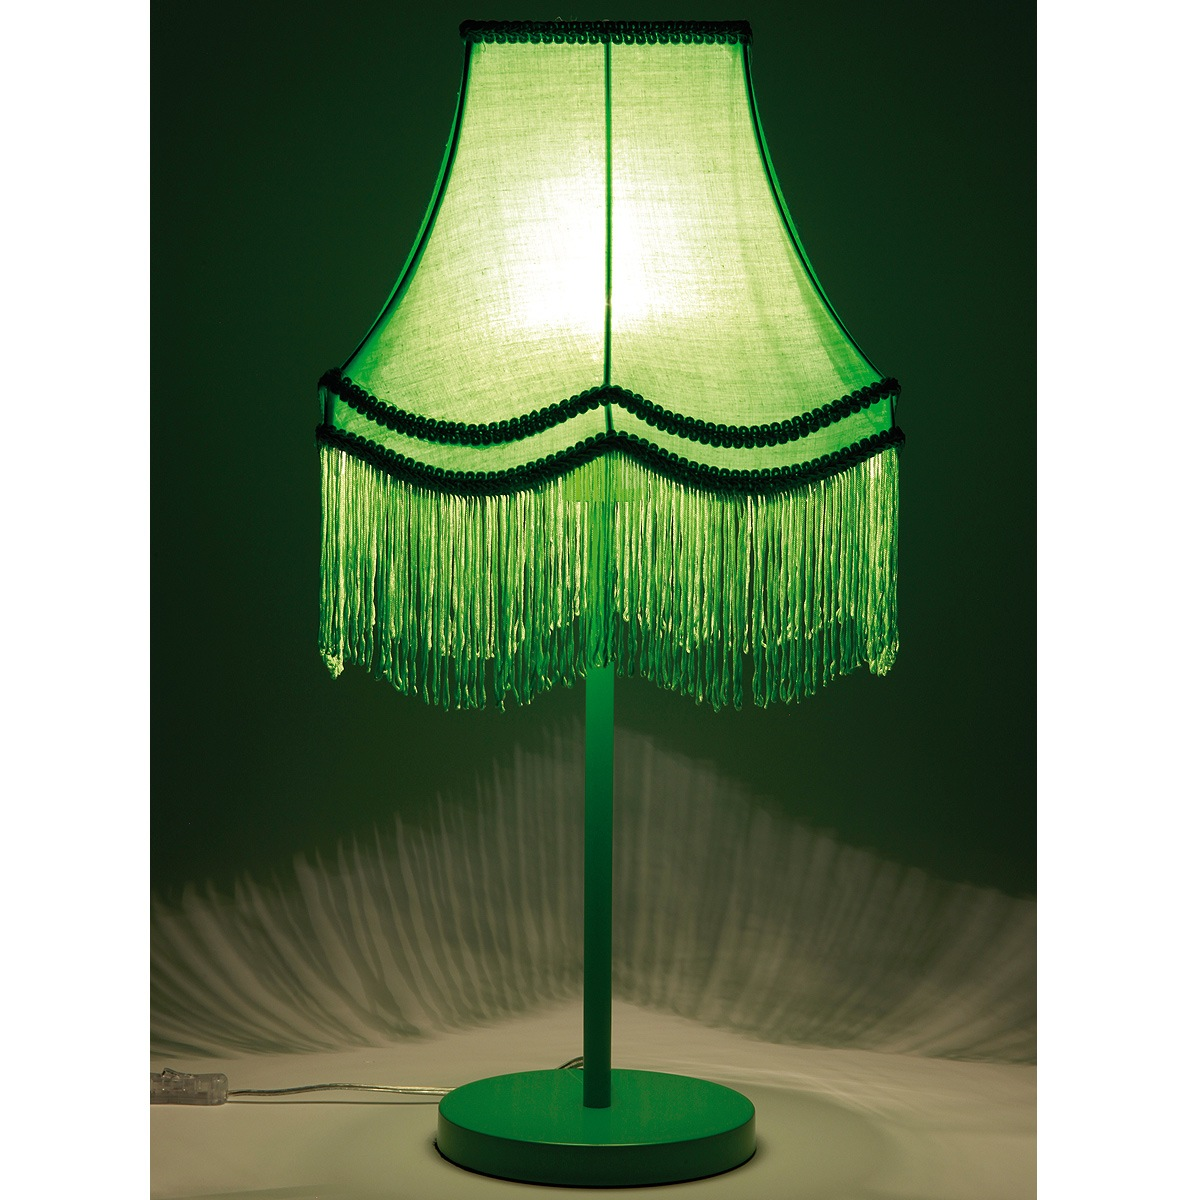 fluoro fringe lime green table lamp image 2 by the french bedroom. Black Bedroom Furniture Sets. Home Design Ideas